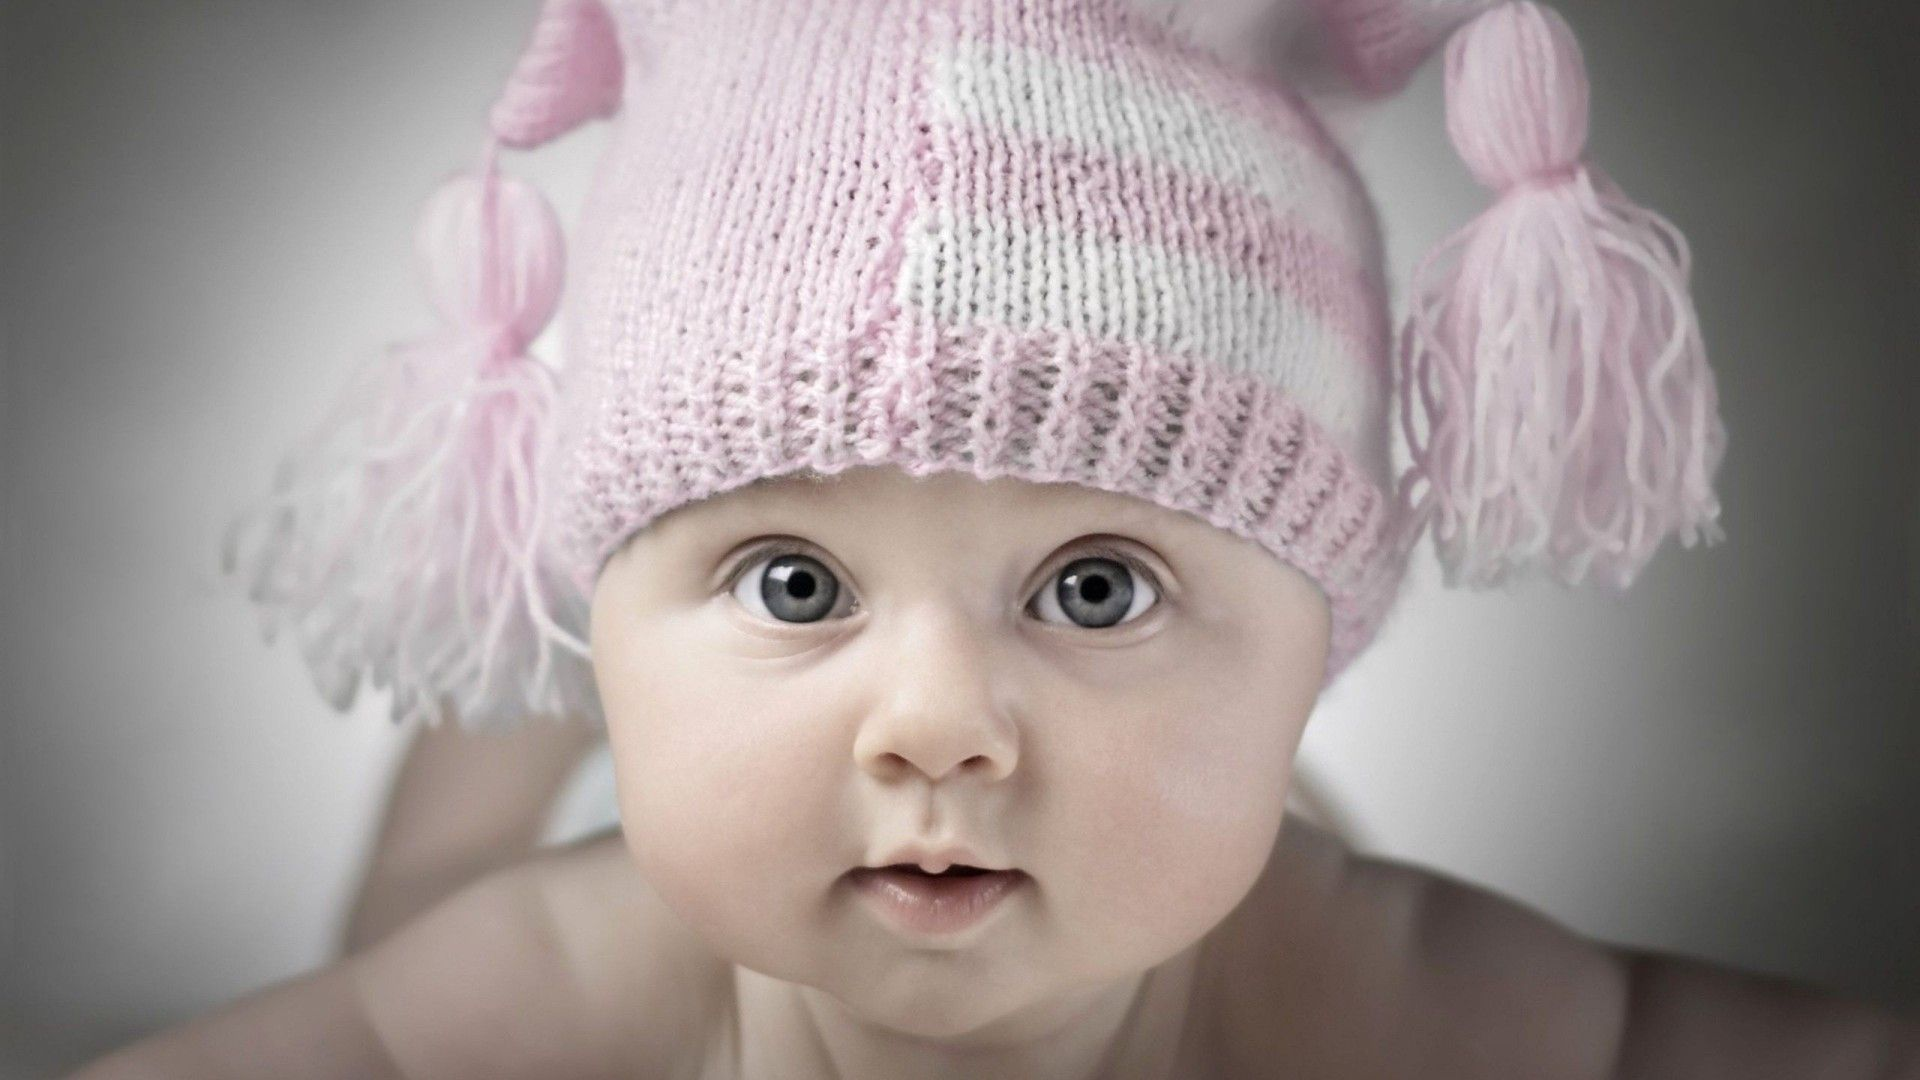 Pin By Renchumi On New Born Baby Cute Baby Wallpaper Baby Boy Pictures Baby Images